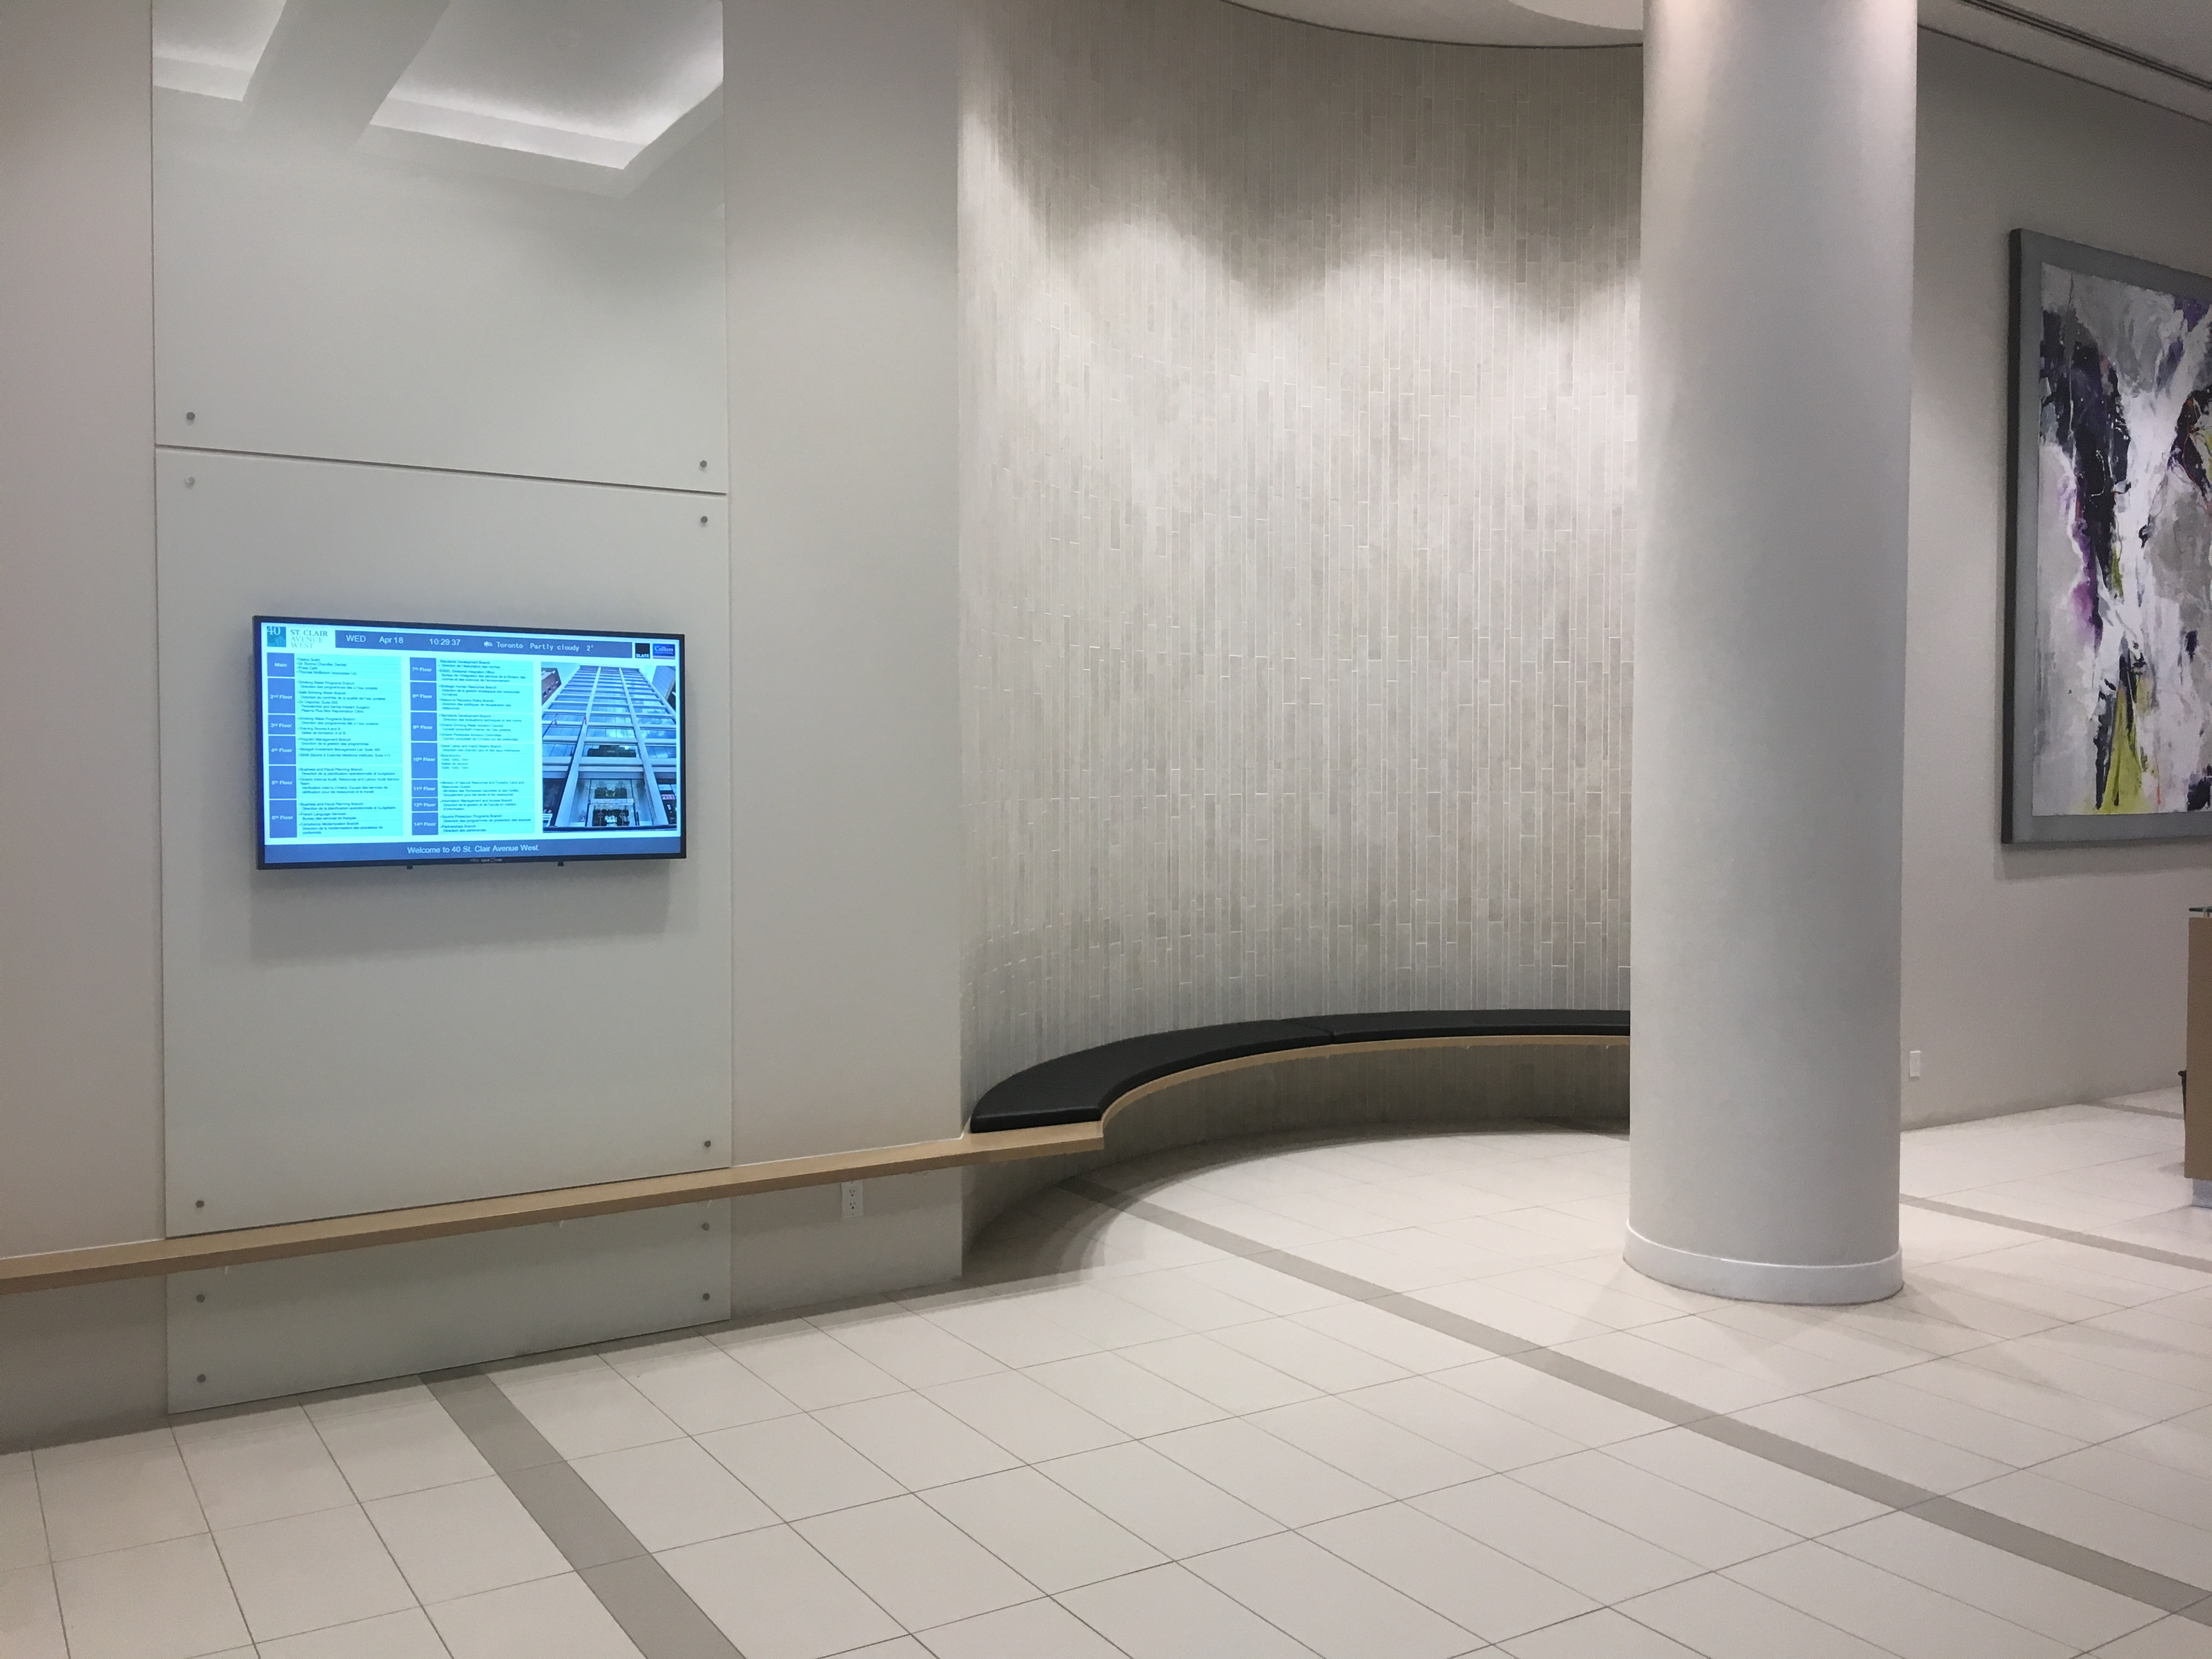 40 St-Clair Toronto – Wall Mounted LCD Screen